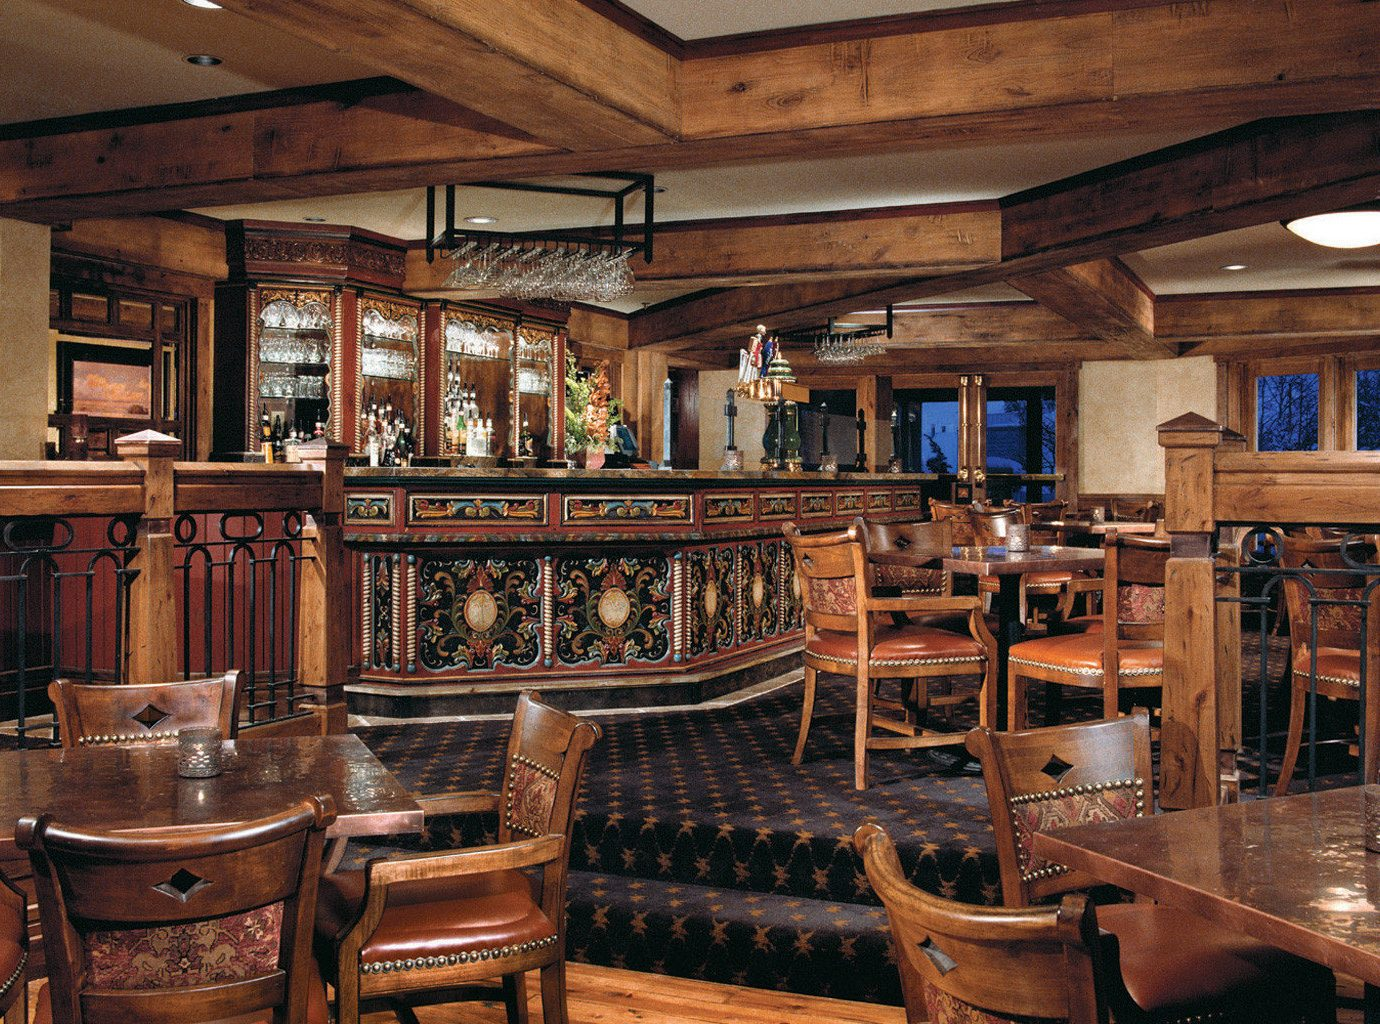 Dining Drink Eat Hotels Lodge Luxury Travel Mountains + Skiing Rustic indoor ceiling Kitchen chair room estate building Bar tavern restaurant home interior design mansion furniture Winery appliance area stainless wood Island steel table dining table dining room